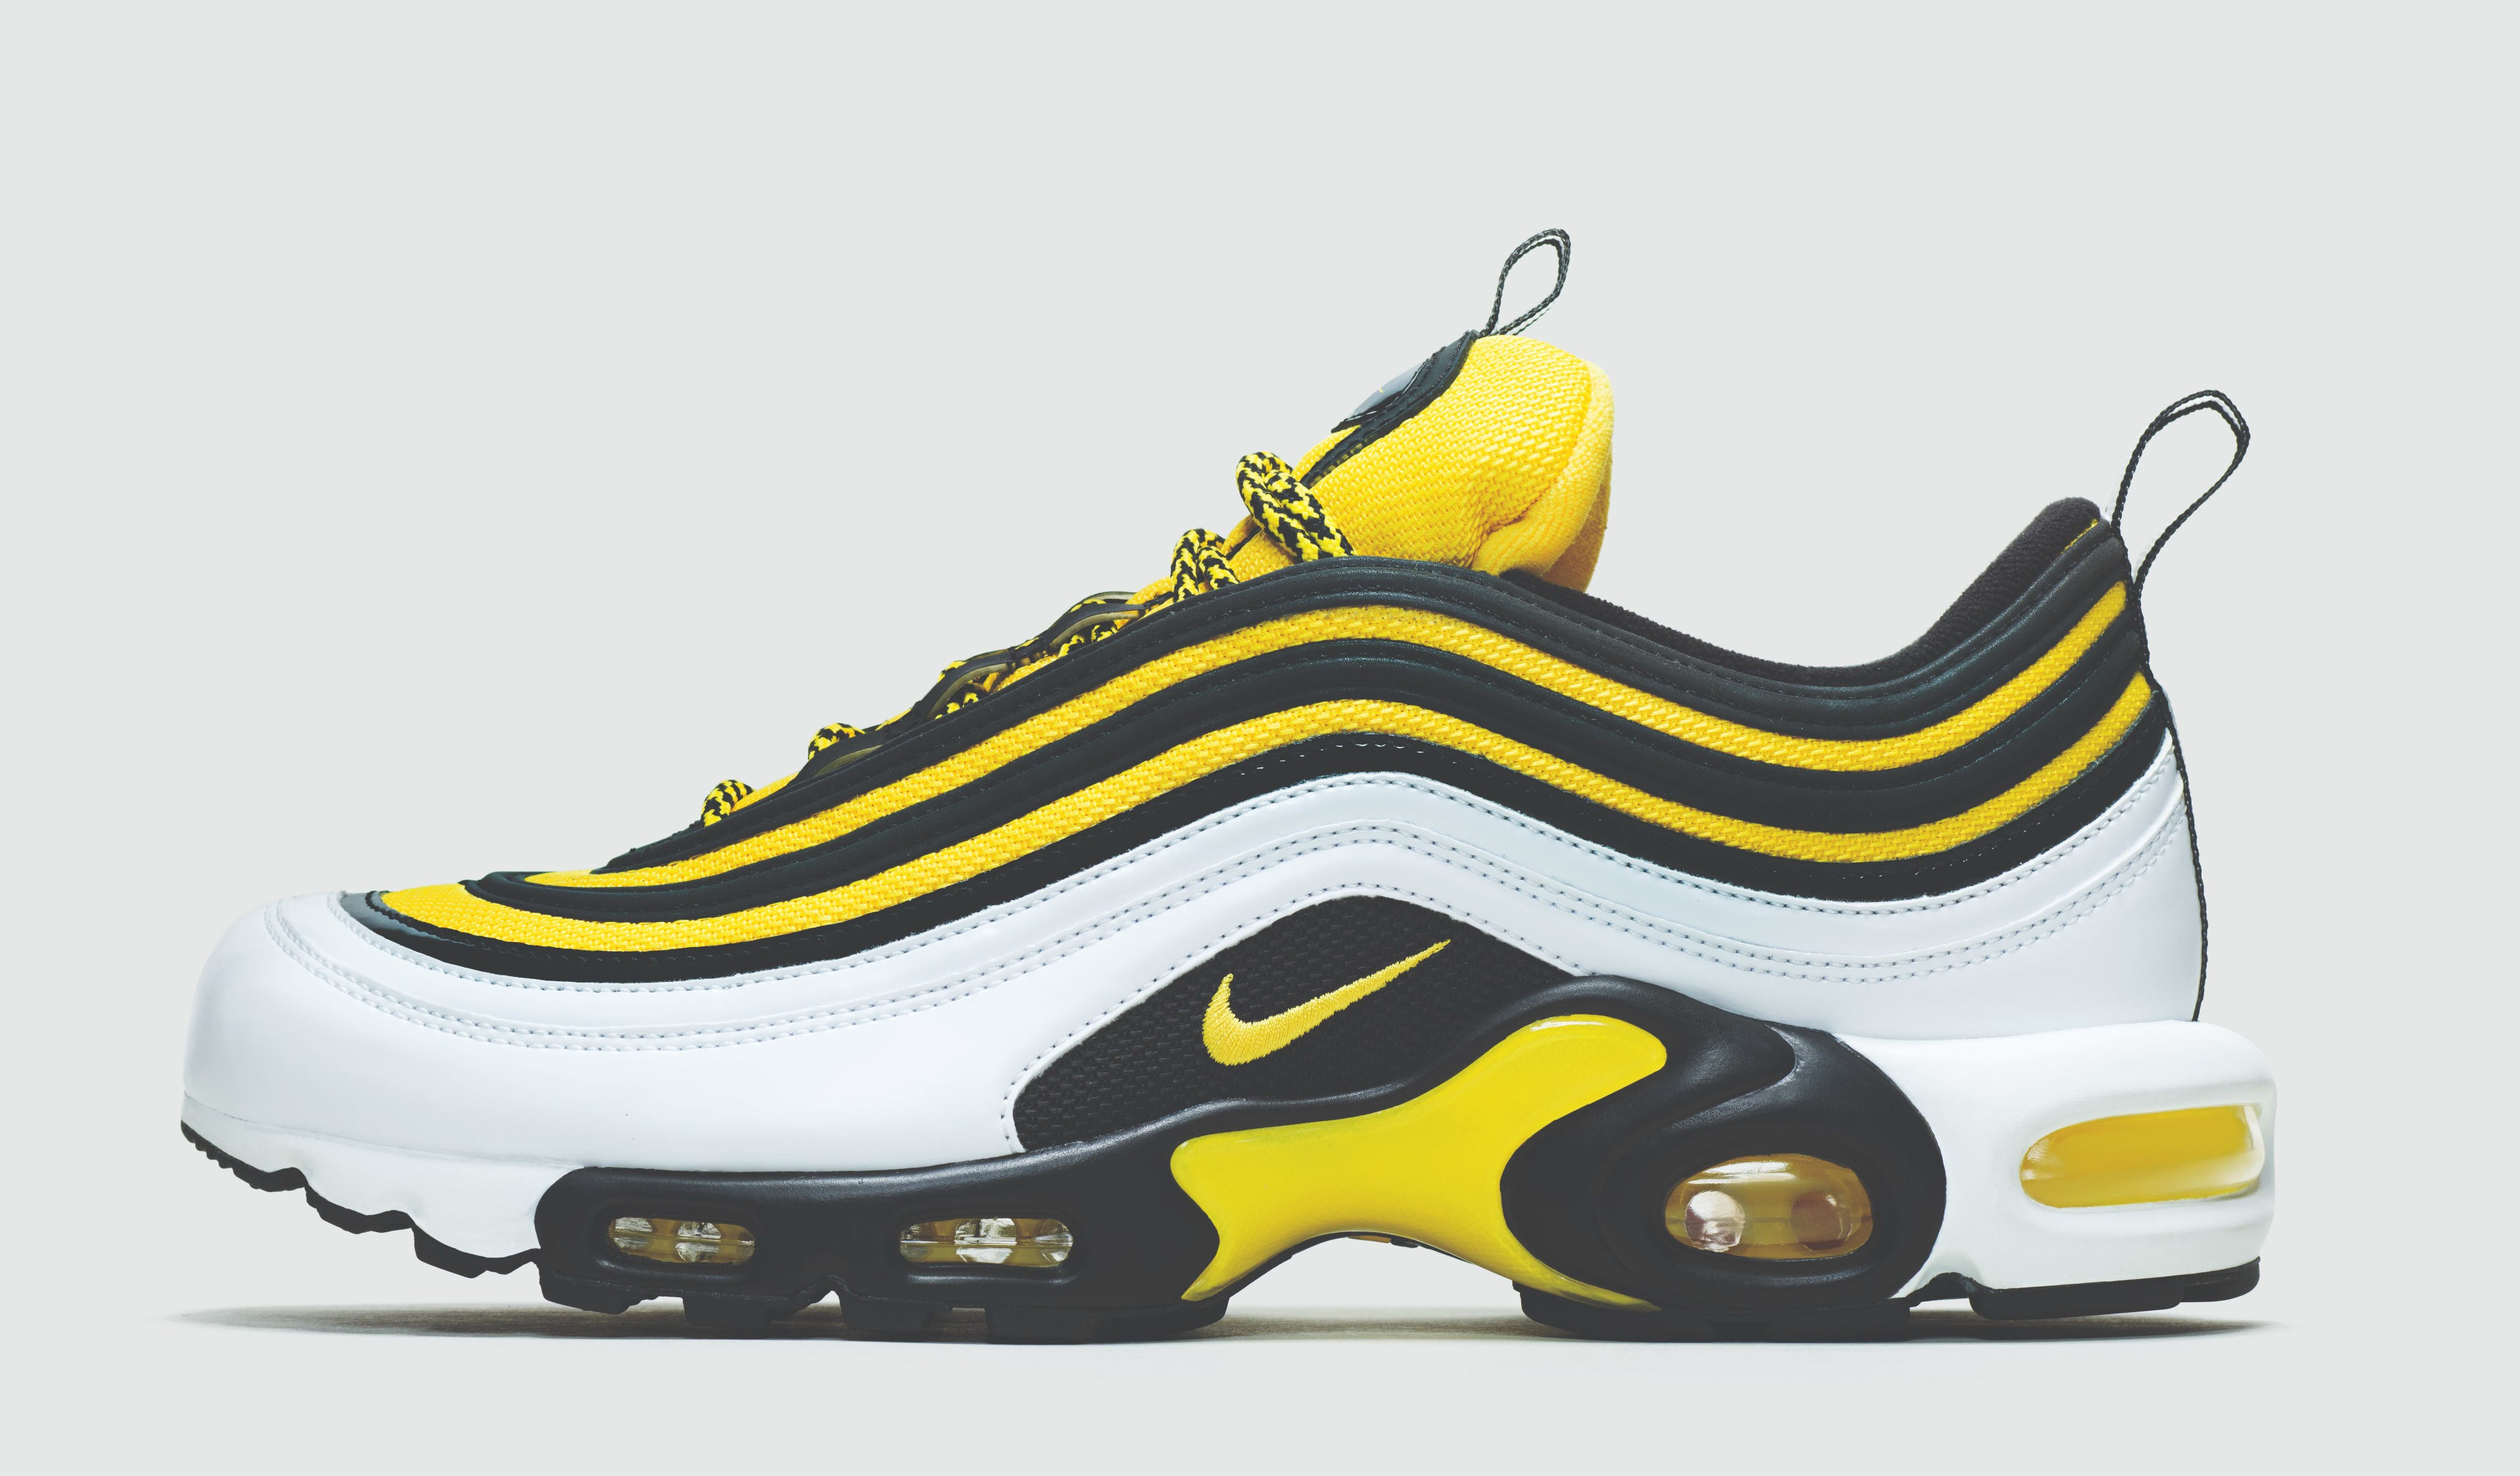 Nike Air Max Plus 97 'Frequency'